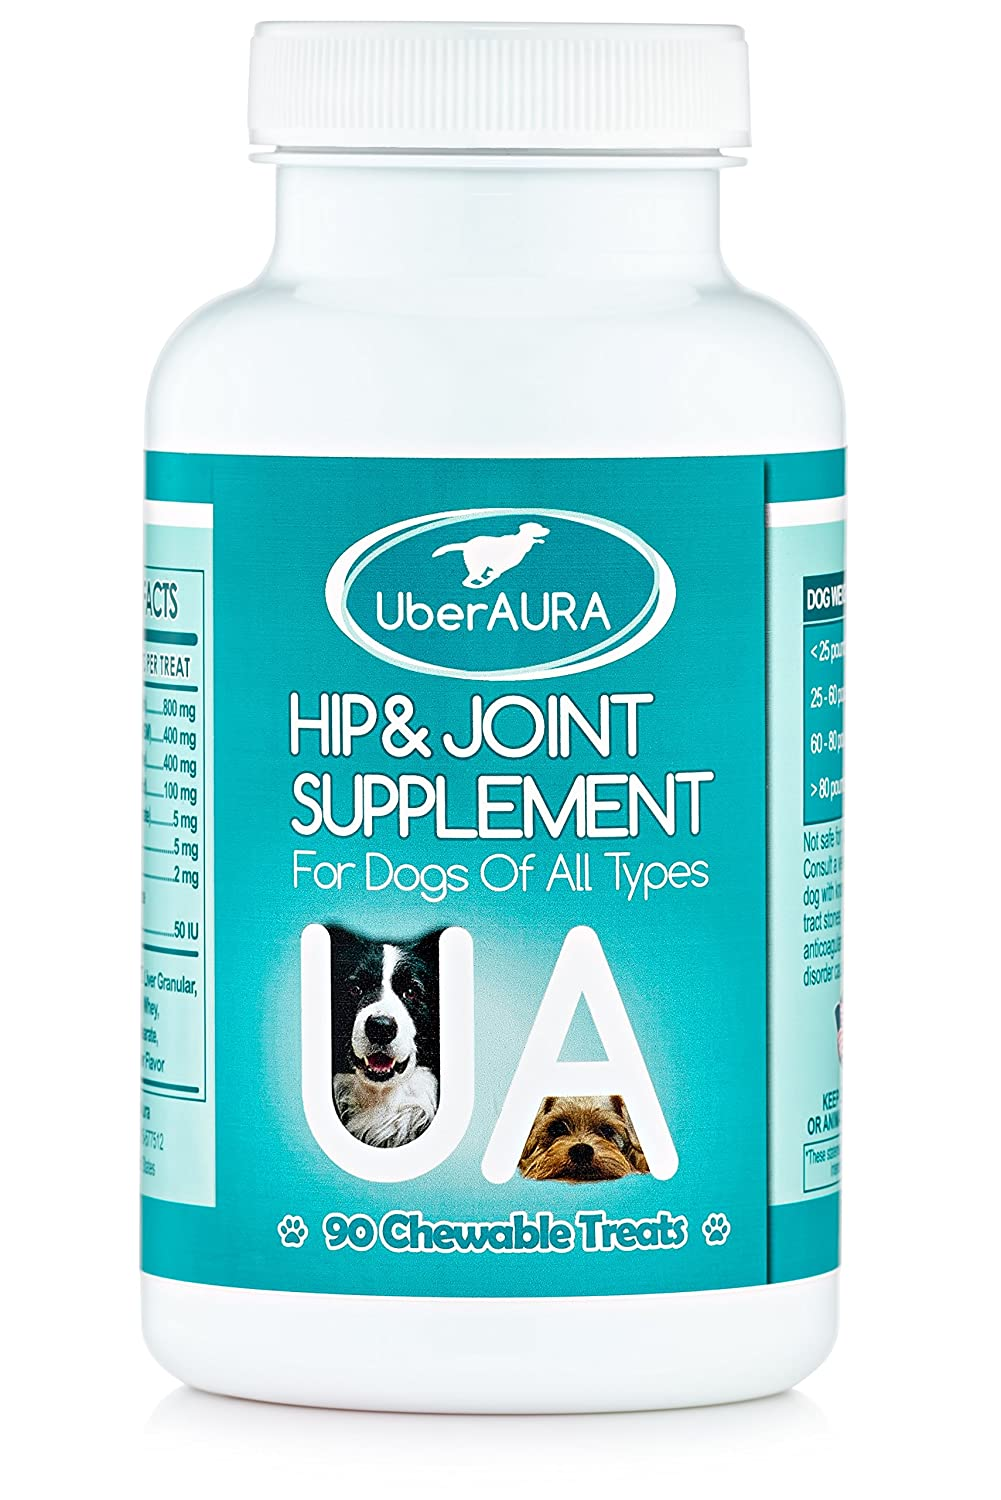 Advanced Hip & Joint Supplement for Dogs - 90 Flavorsome Chewable Treats with 800mg Glucosamine, 400mg Chondroitin, 400mg MSM, Vitamin C and more - Made in USA